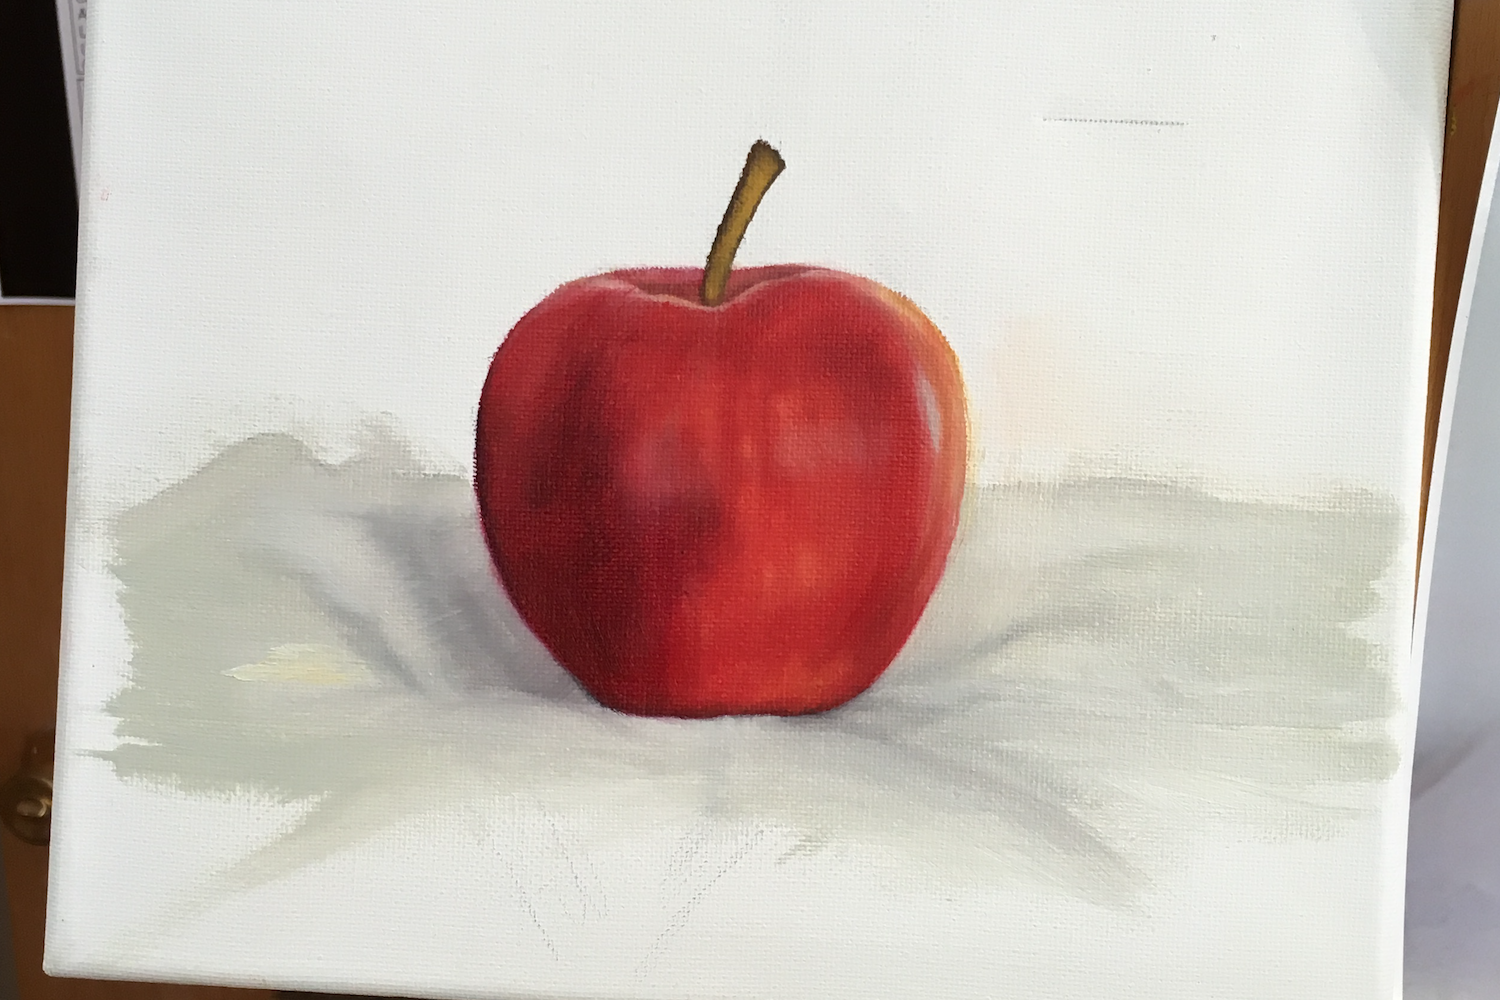 local-sketch-artist-and-oil-based-painter-for-hire-in-phoenix-az-apple-painting-on-eisel